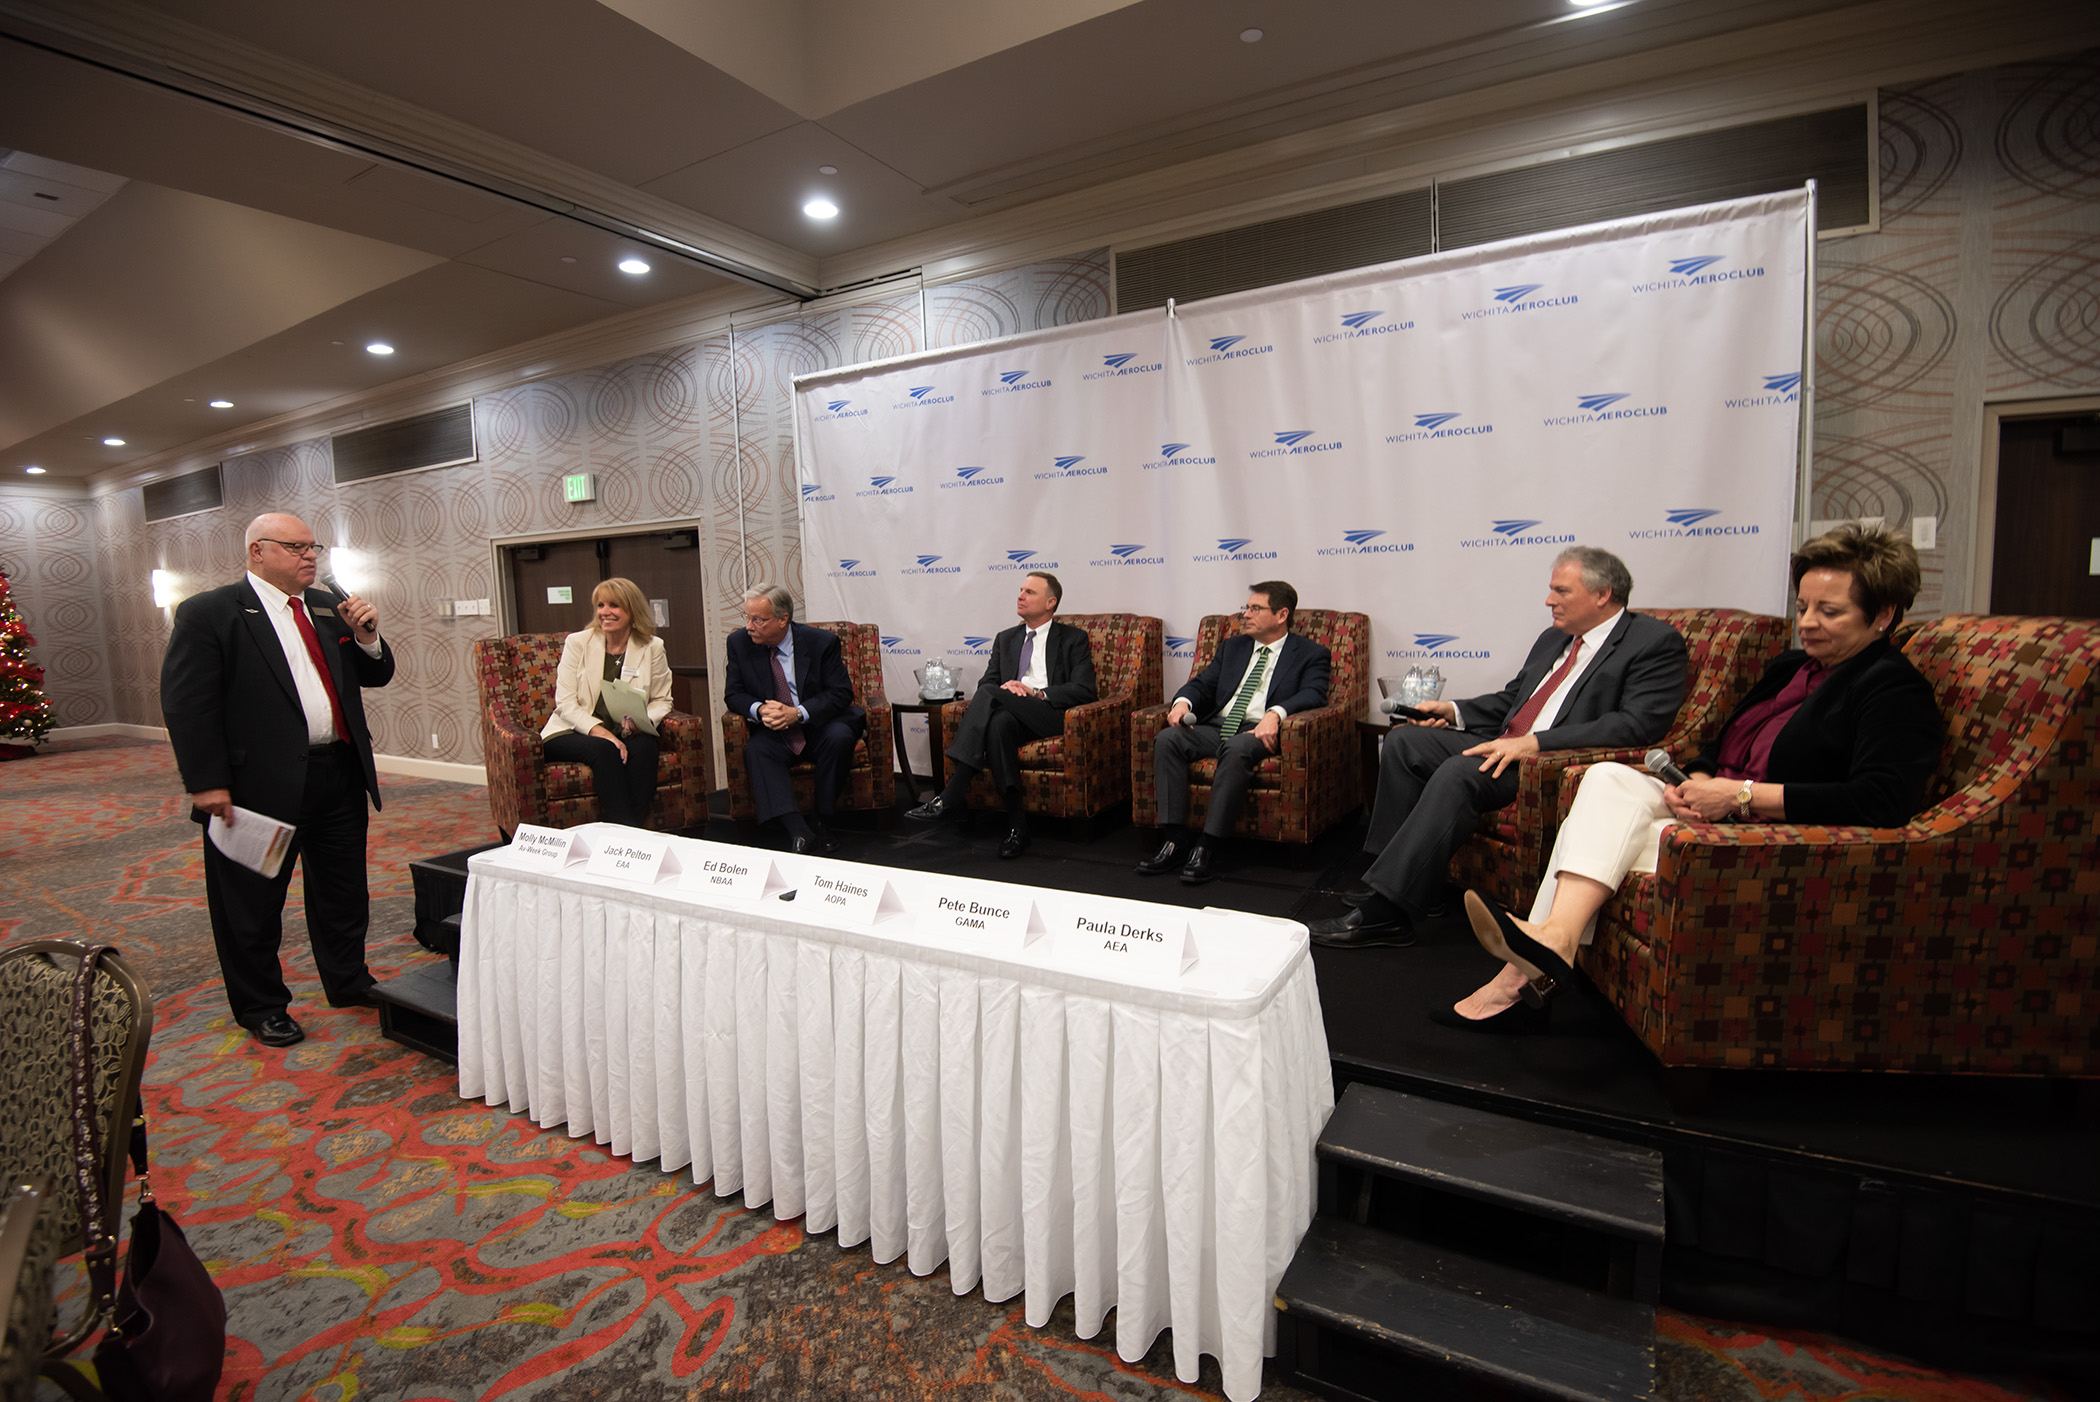 The 2018 panel included  Jack Pelton, President and CEO of EAA, Ed Bolen, President and CEO of NBAA, Pete Bunce, President and CEO of GAMA, Tom Haines, Senior Vice President, Media and Outreach AOPA, Paula Derks, former President of AEA.